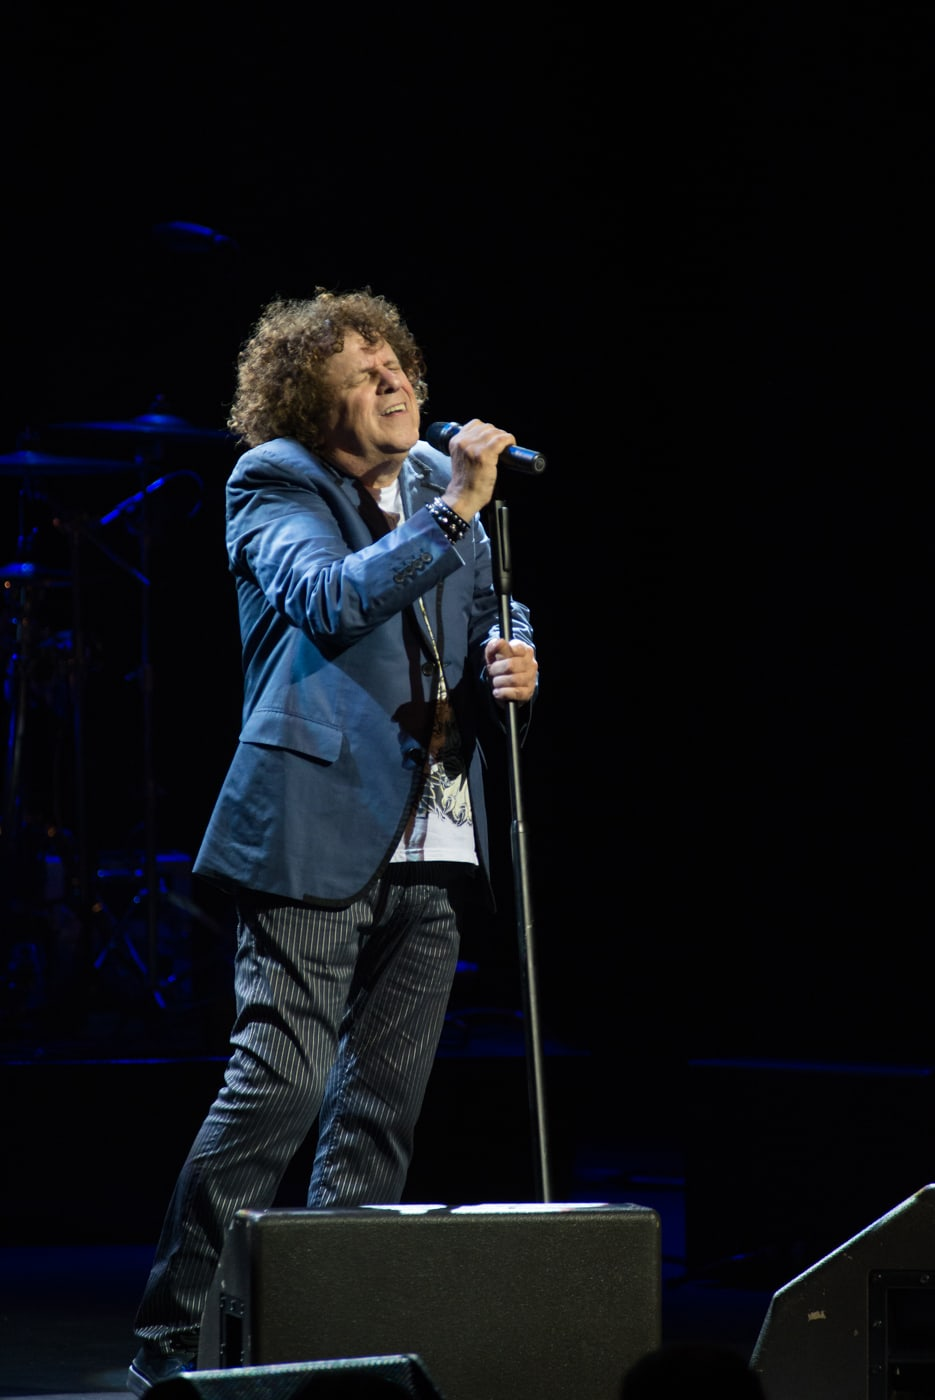 Leo Sayer at Bord Gais Energy Theatre by Sean Smyth (16-10-15) (54 of 129)